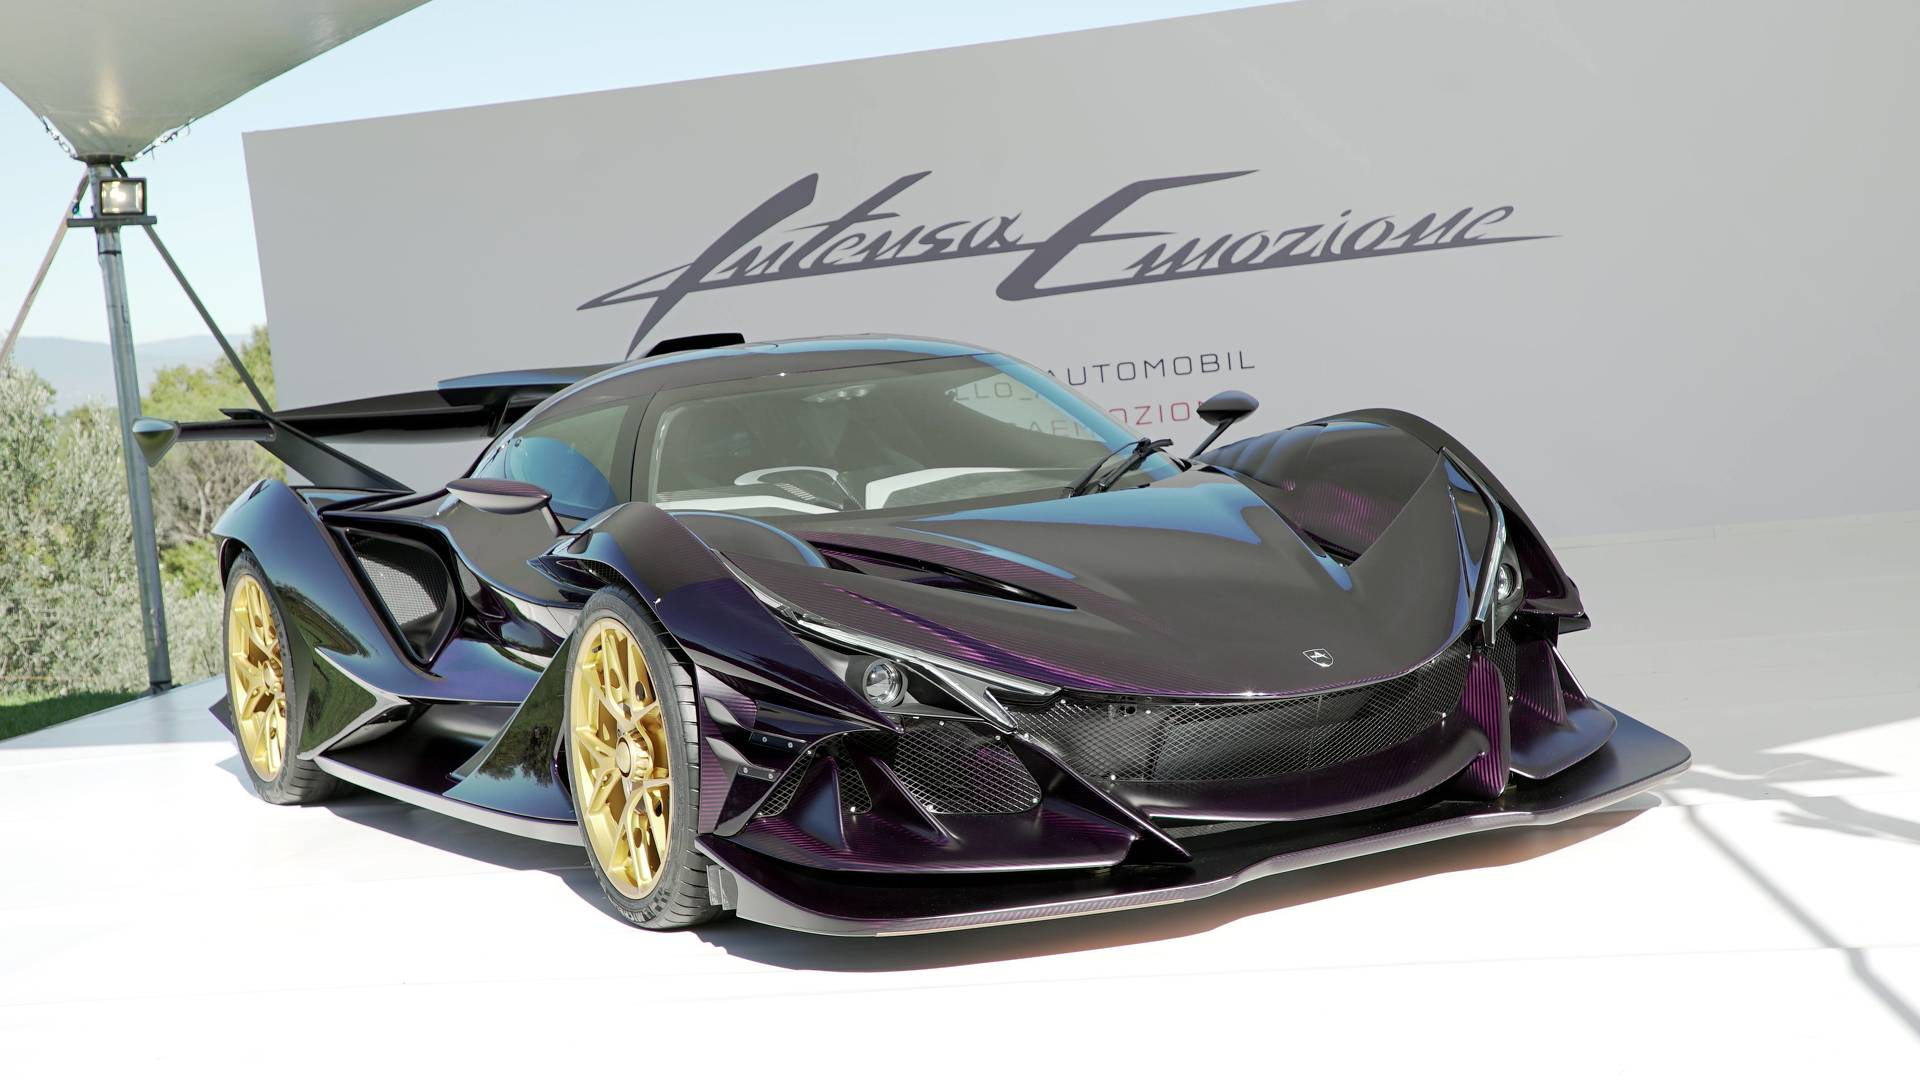 A YouTube user has recently uploaded a video showing an extremely rare Apollo IE Purple Dragon hypercar riding the streets in Monaco